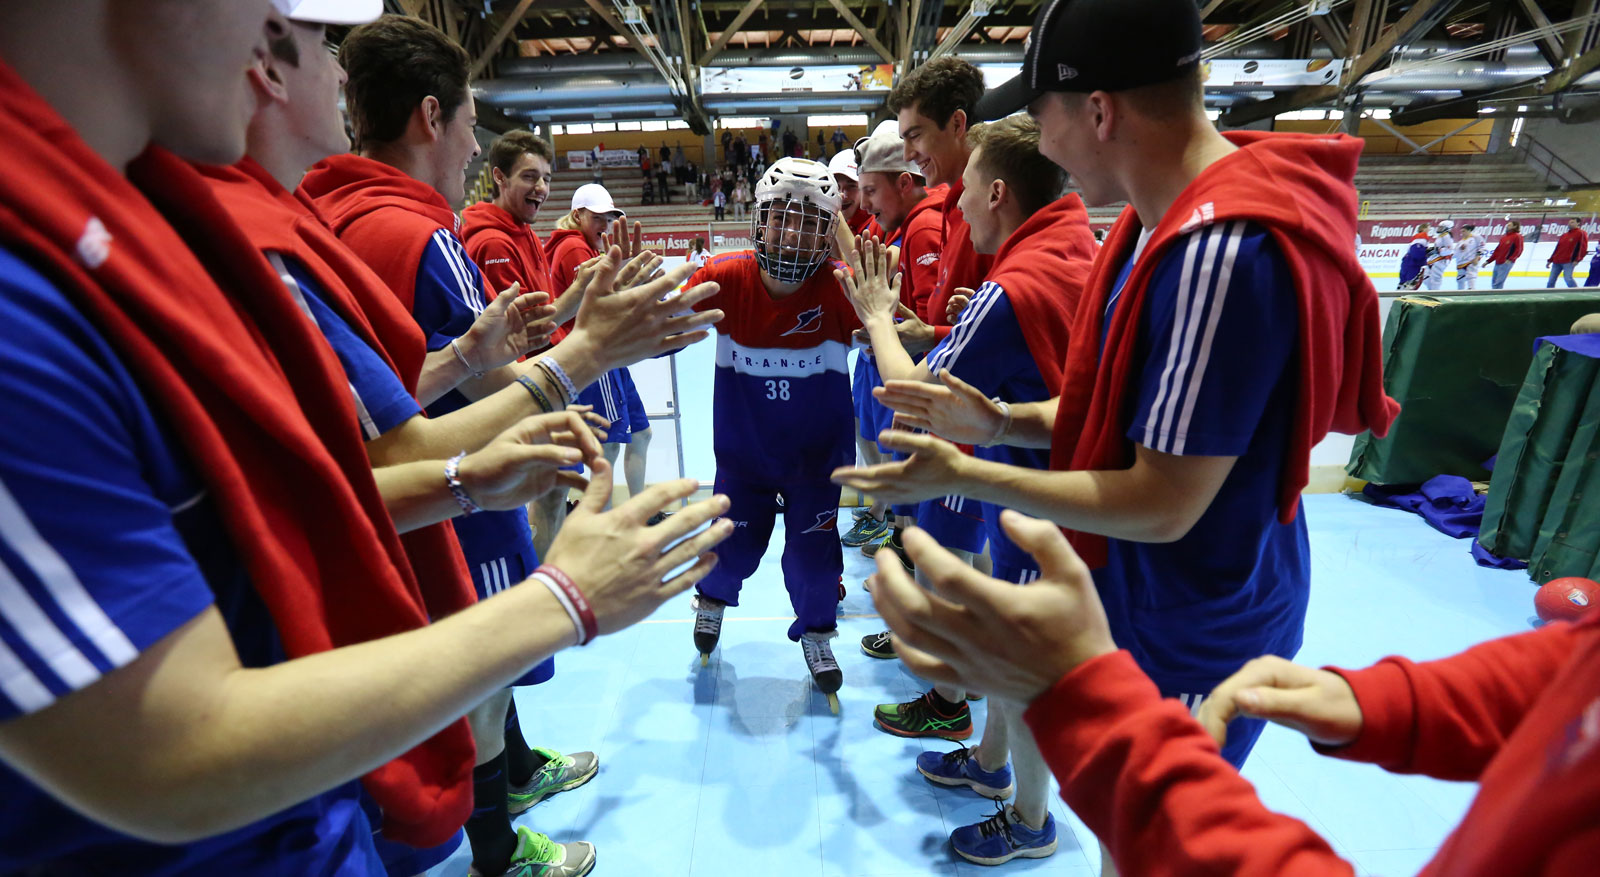 equipe_france_dames_roller_hockey_quart_final_mondial_2016_03